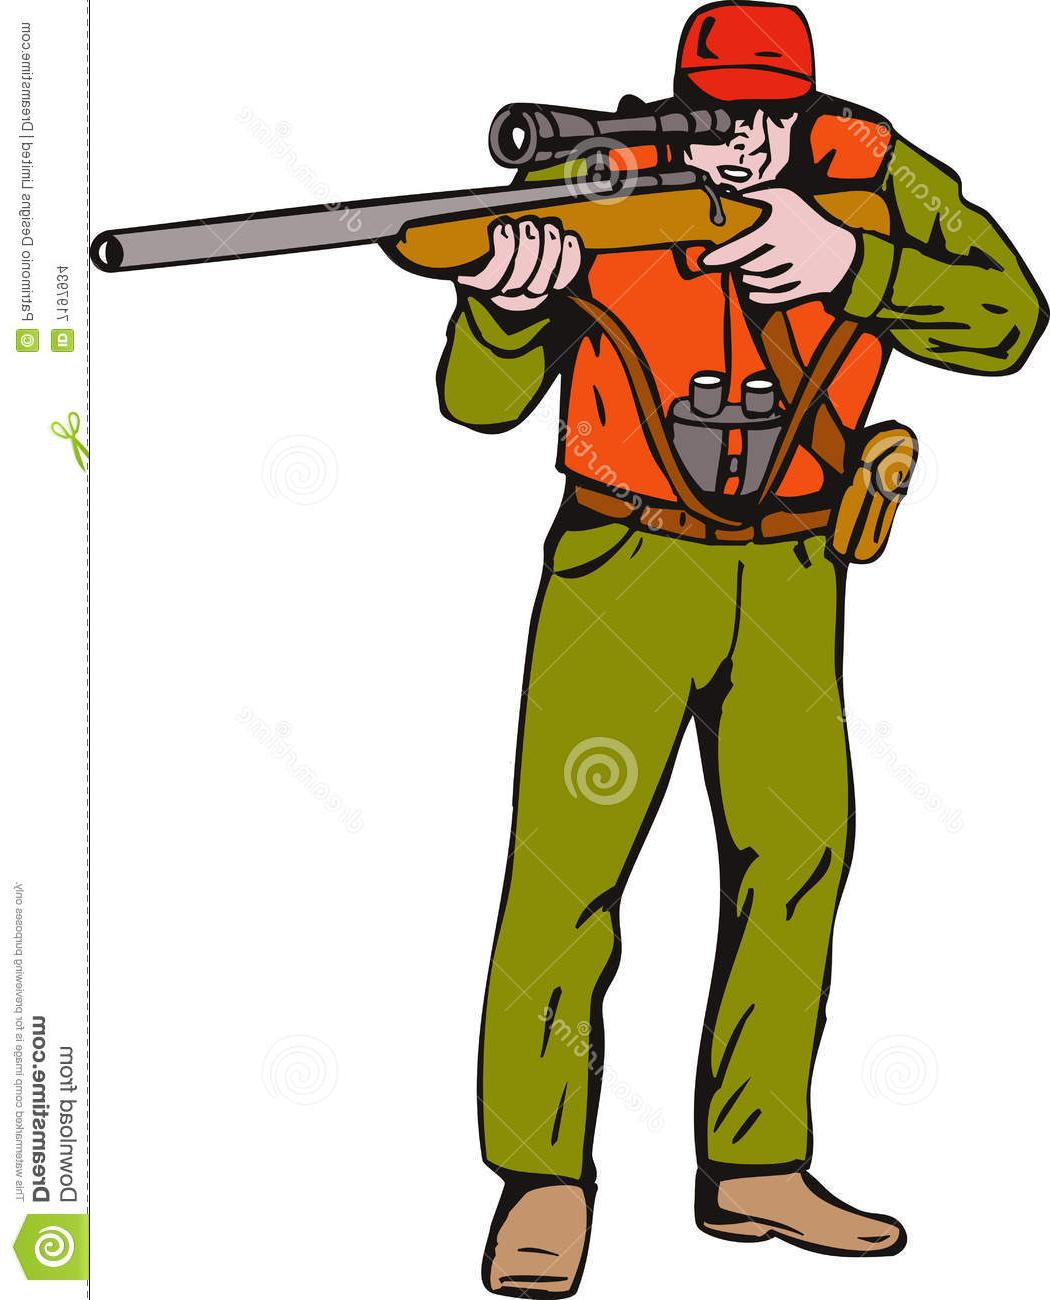 1050x1300 Hd Hunter Clipart Hunting Rifle Aiming Gun File Free